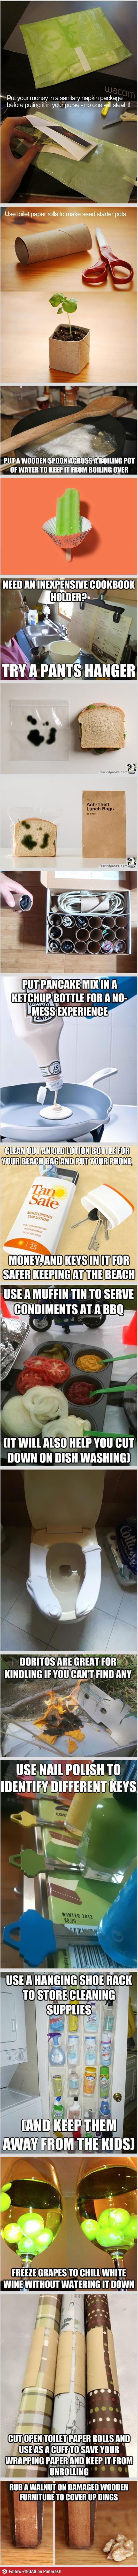 Lifehacks - part 2 Some of these at good ;)